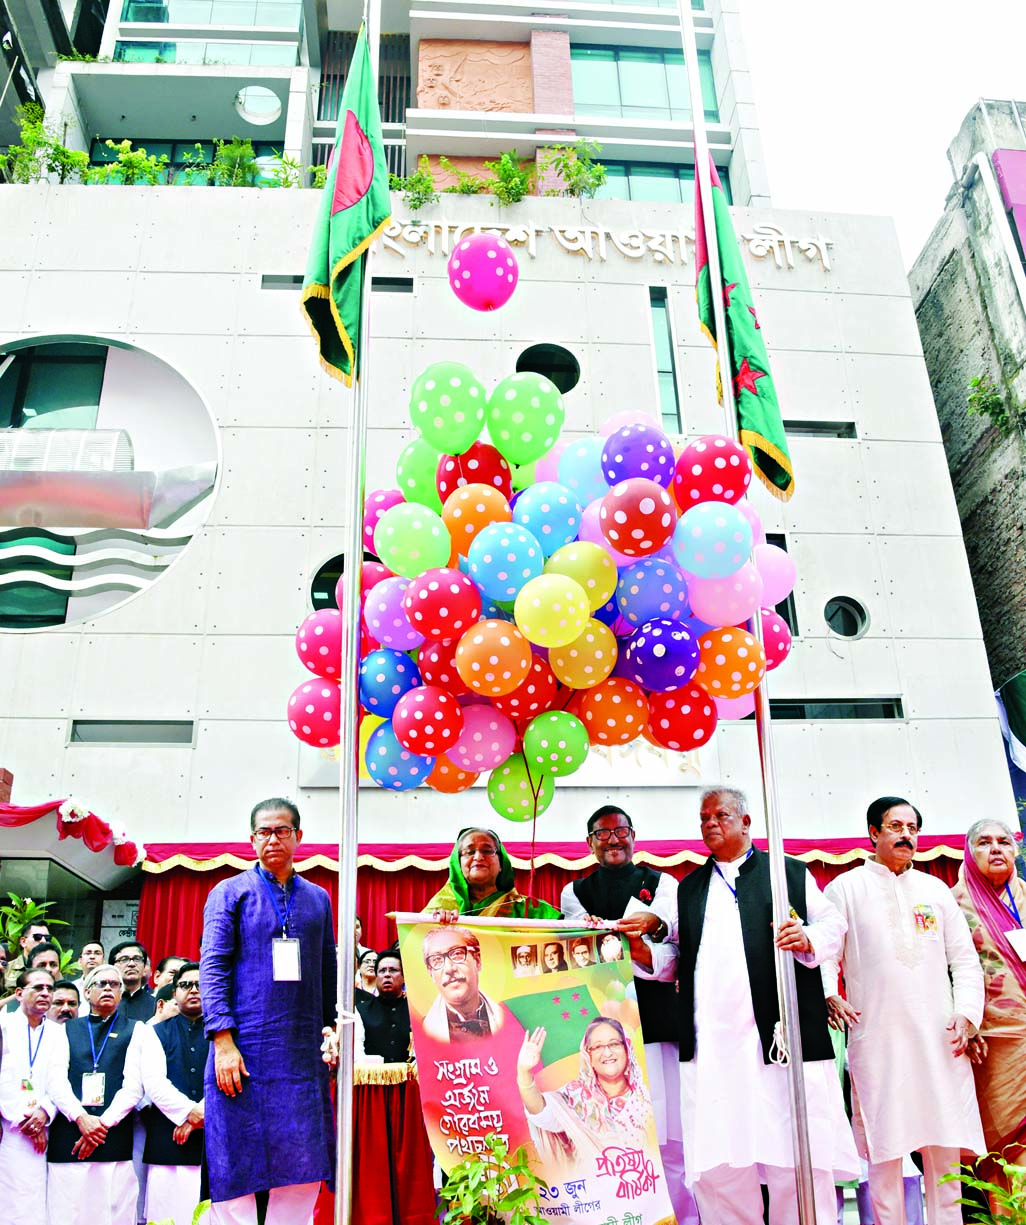 Prime Minister and Awami League President Sheikh Hasina inaugurating the newly constructed building of the party's central office by releasing balloons in the city's Bangabandhu Avenue on Saturday.